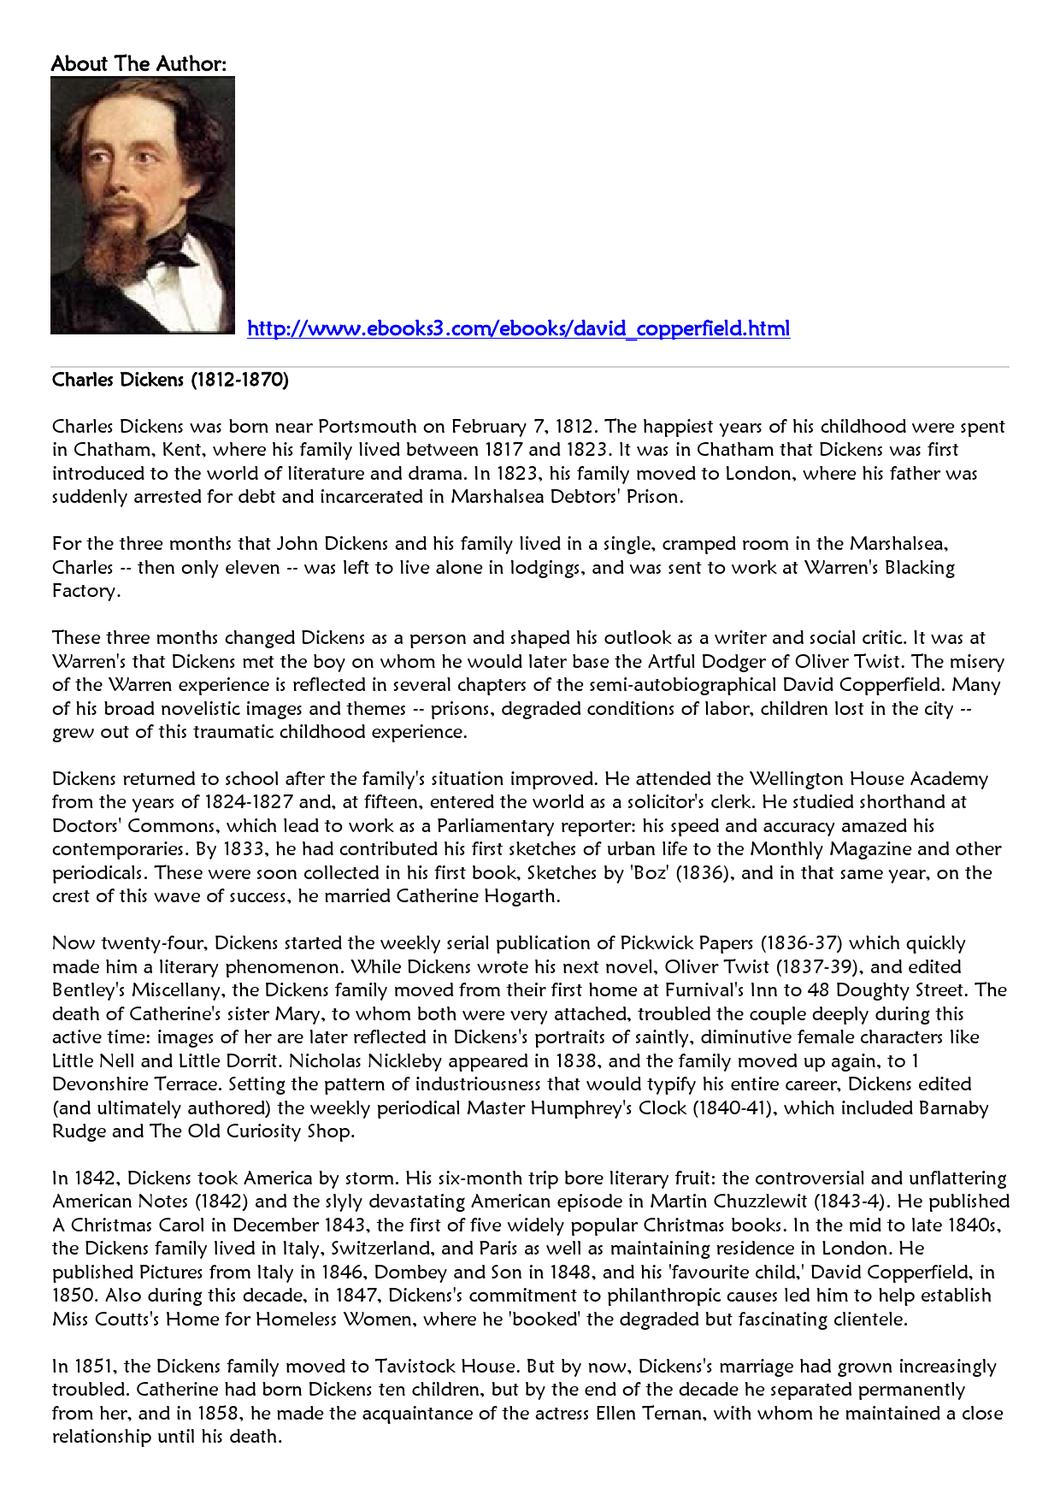 david copperfield very short summary review of david copperfield  david copperfield by tjasa milijas issuu